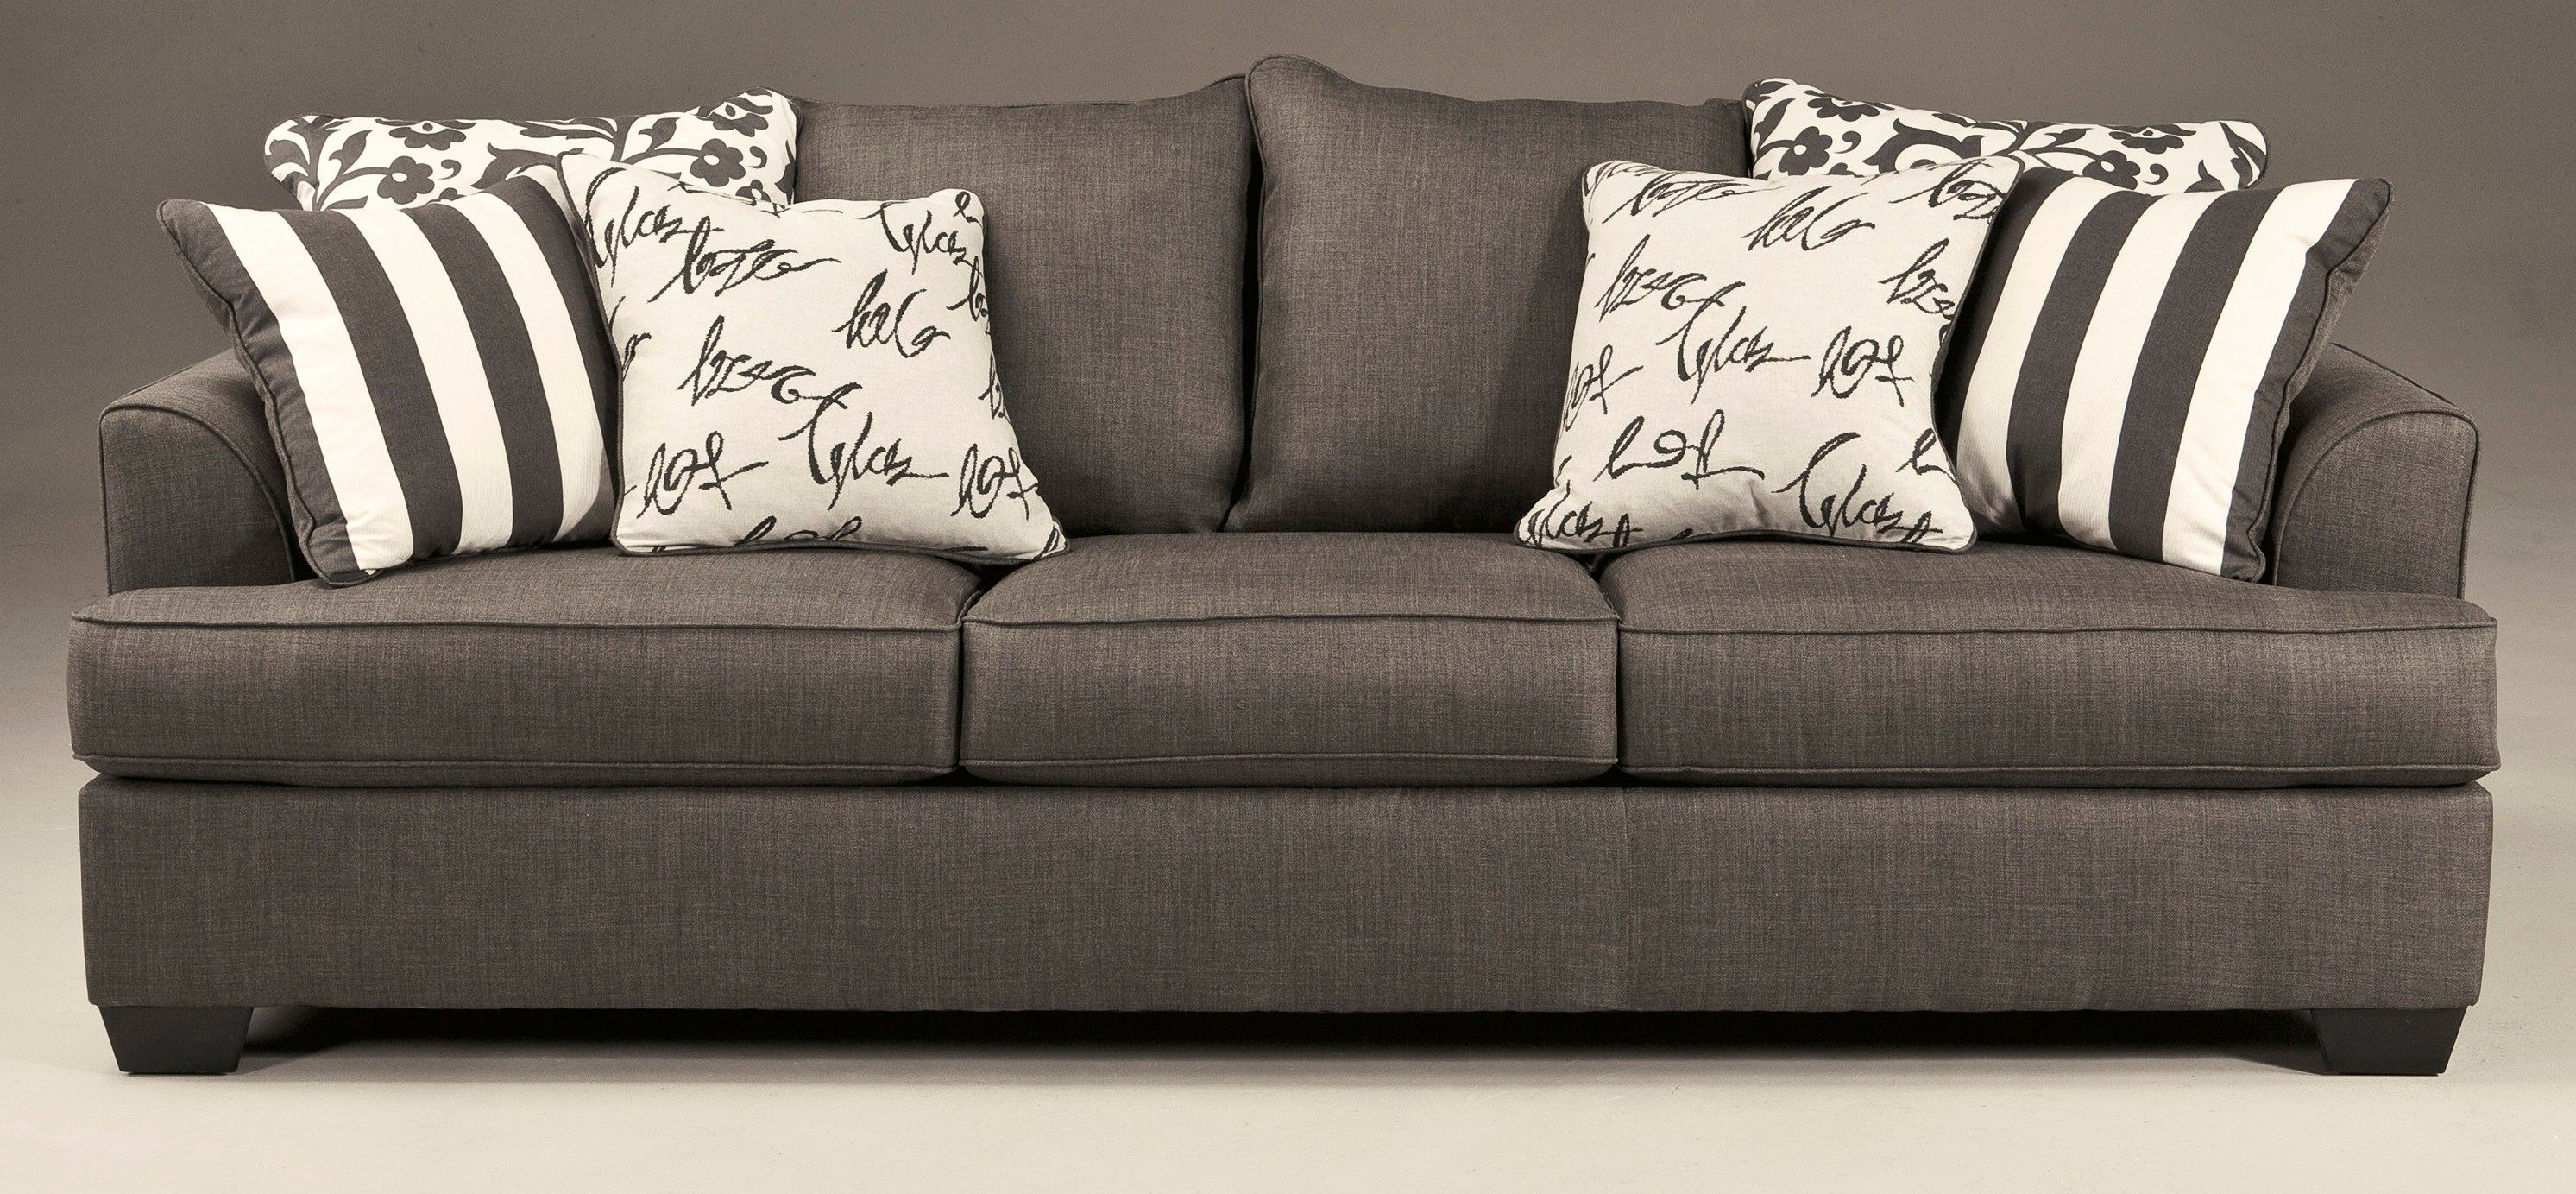 Bettsofa Outlet Elegant Ashley Furniture Sofa Sleeper Picture Ashley Furniture